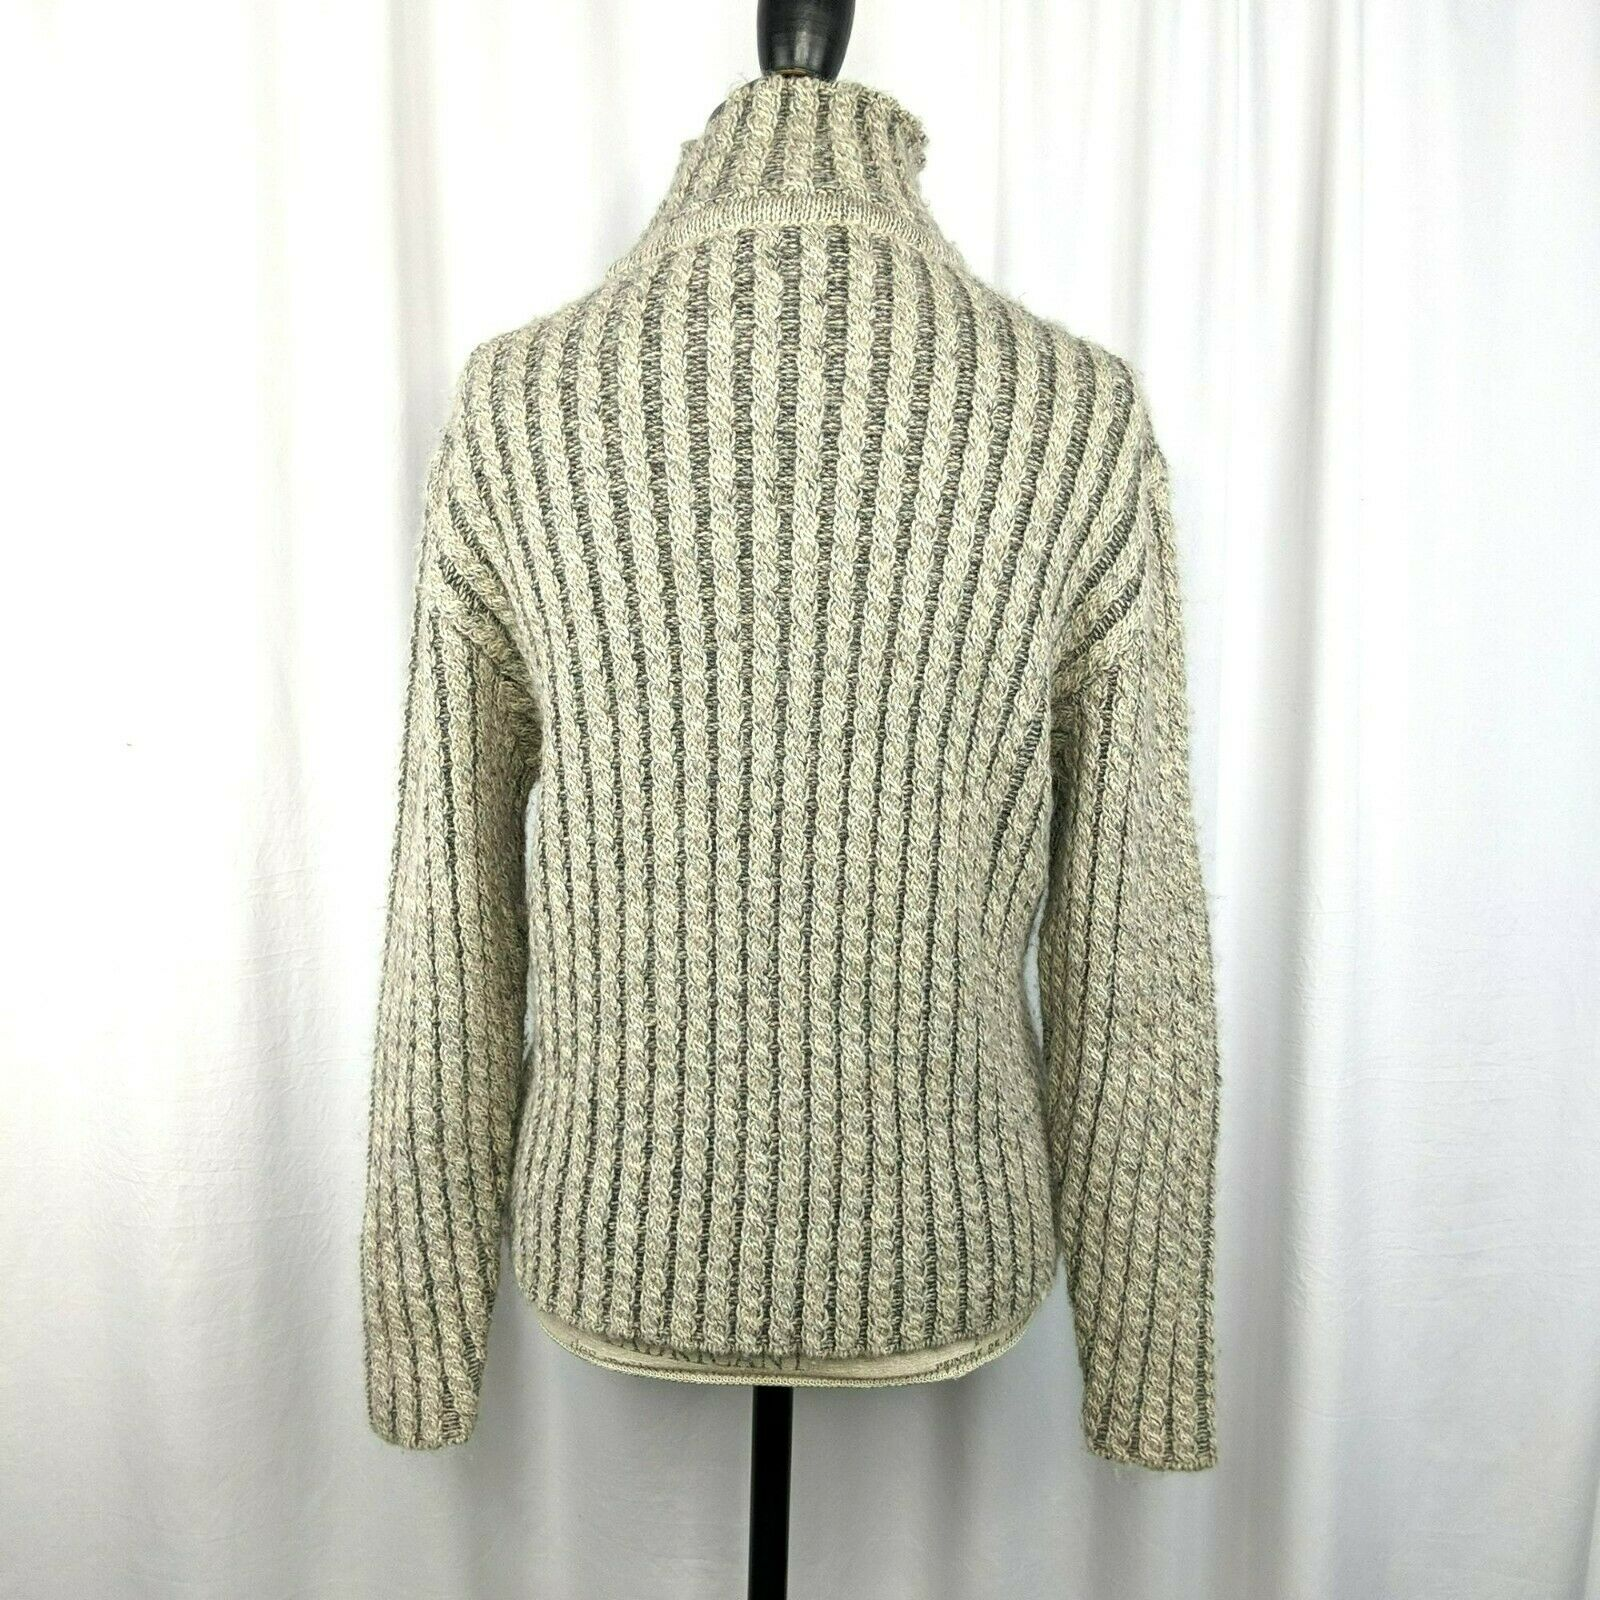 Inis Meain Gray Beige Alpaca Cable Knit Sweater S… - image 5